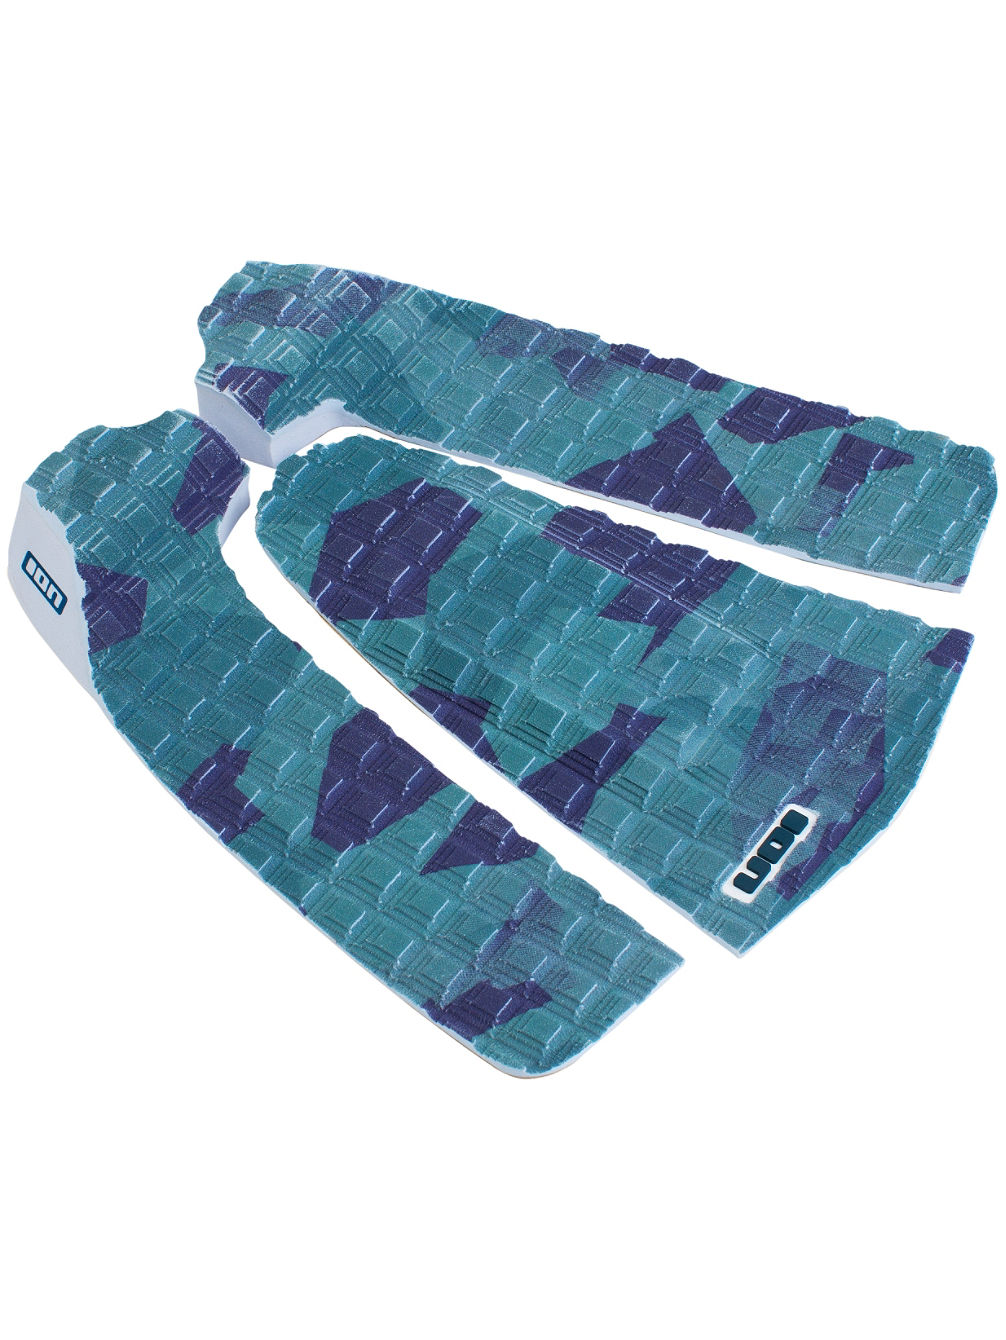 Camouflage (3Pcs) Tail Pad